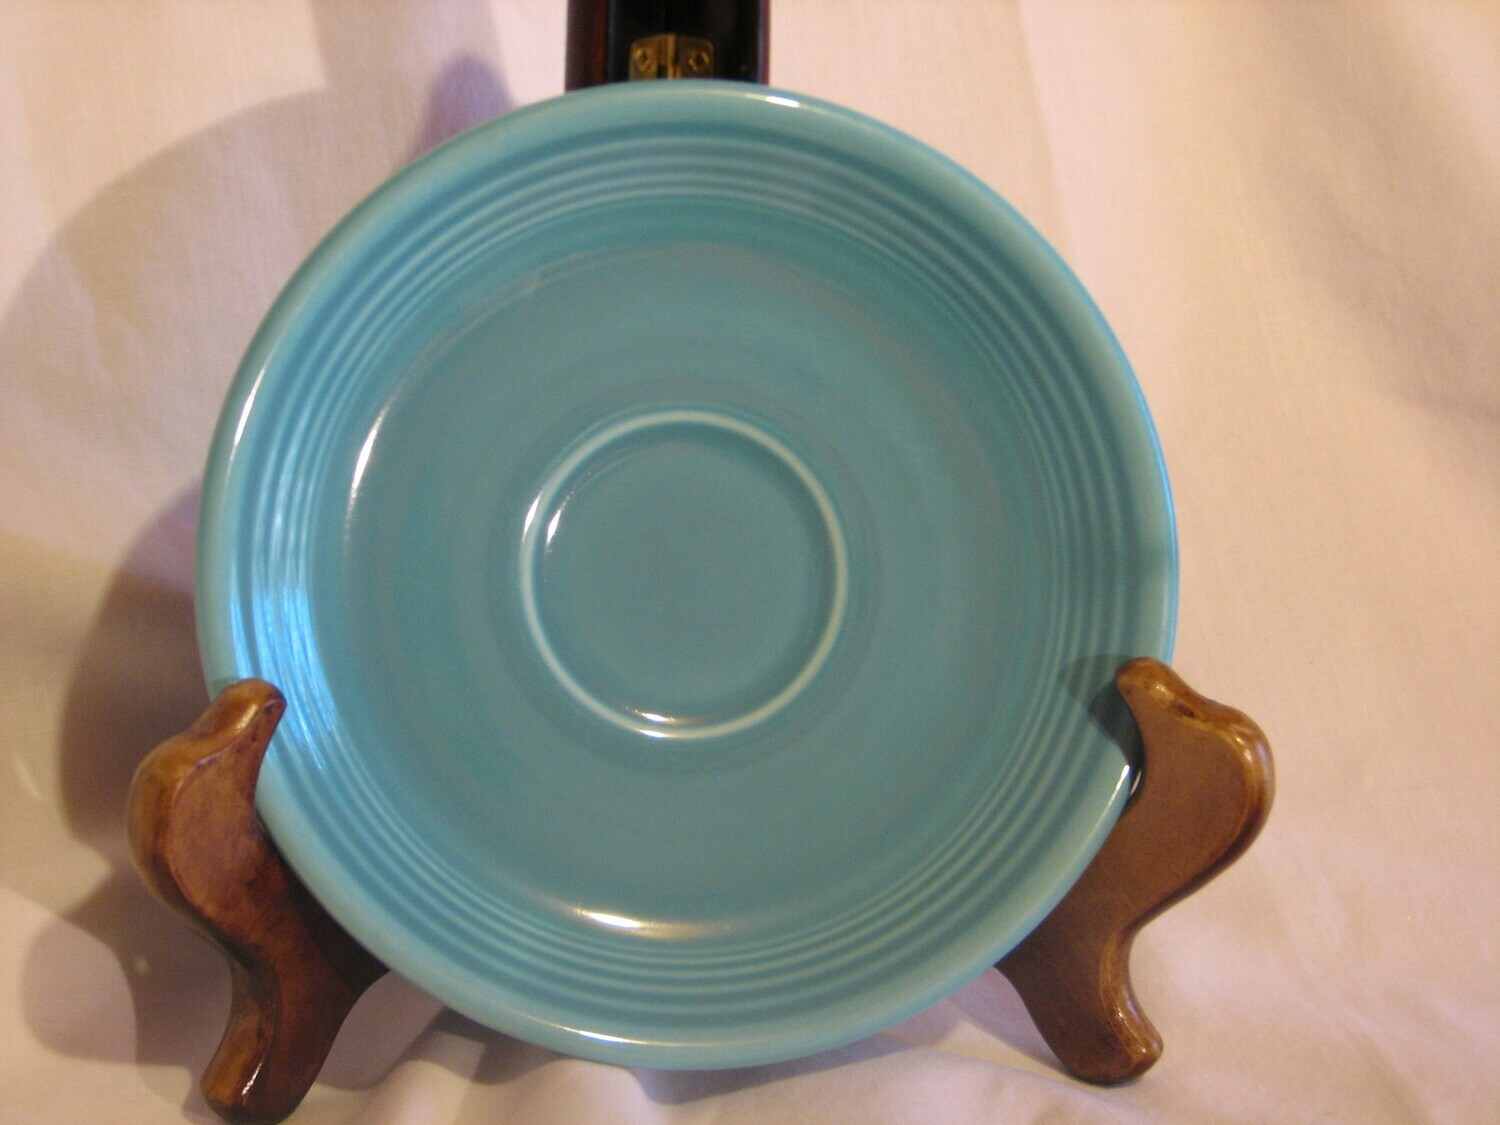 Fiestaware by Homer Laughlin, Saucer, Turquoise